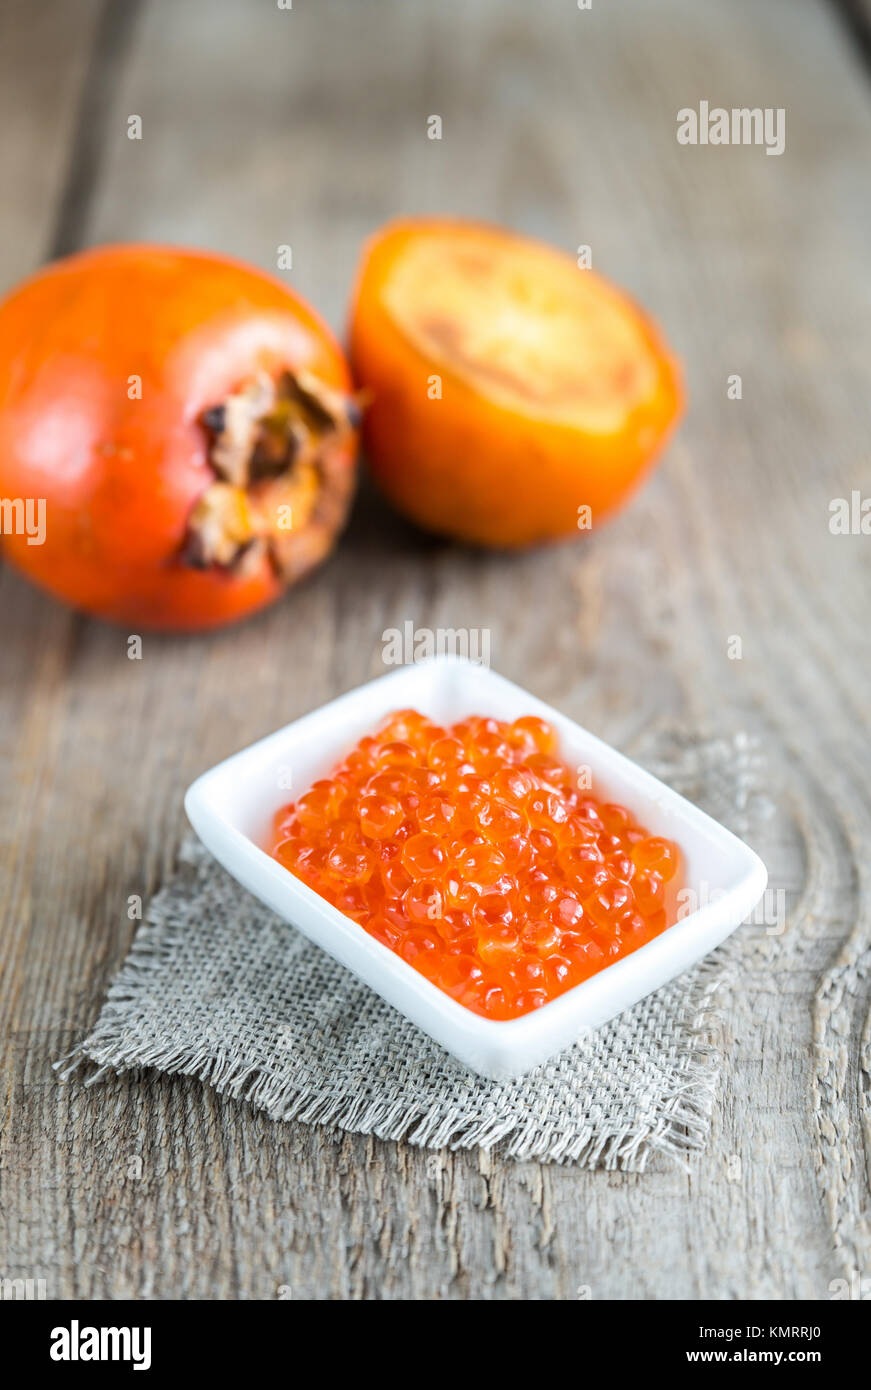 Bowl of red caviar on the wooden table - Stock Image